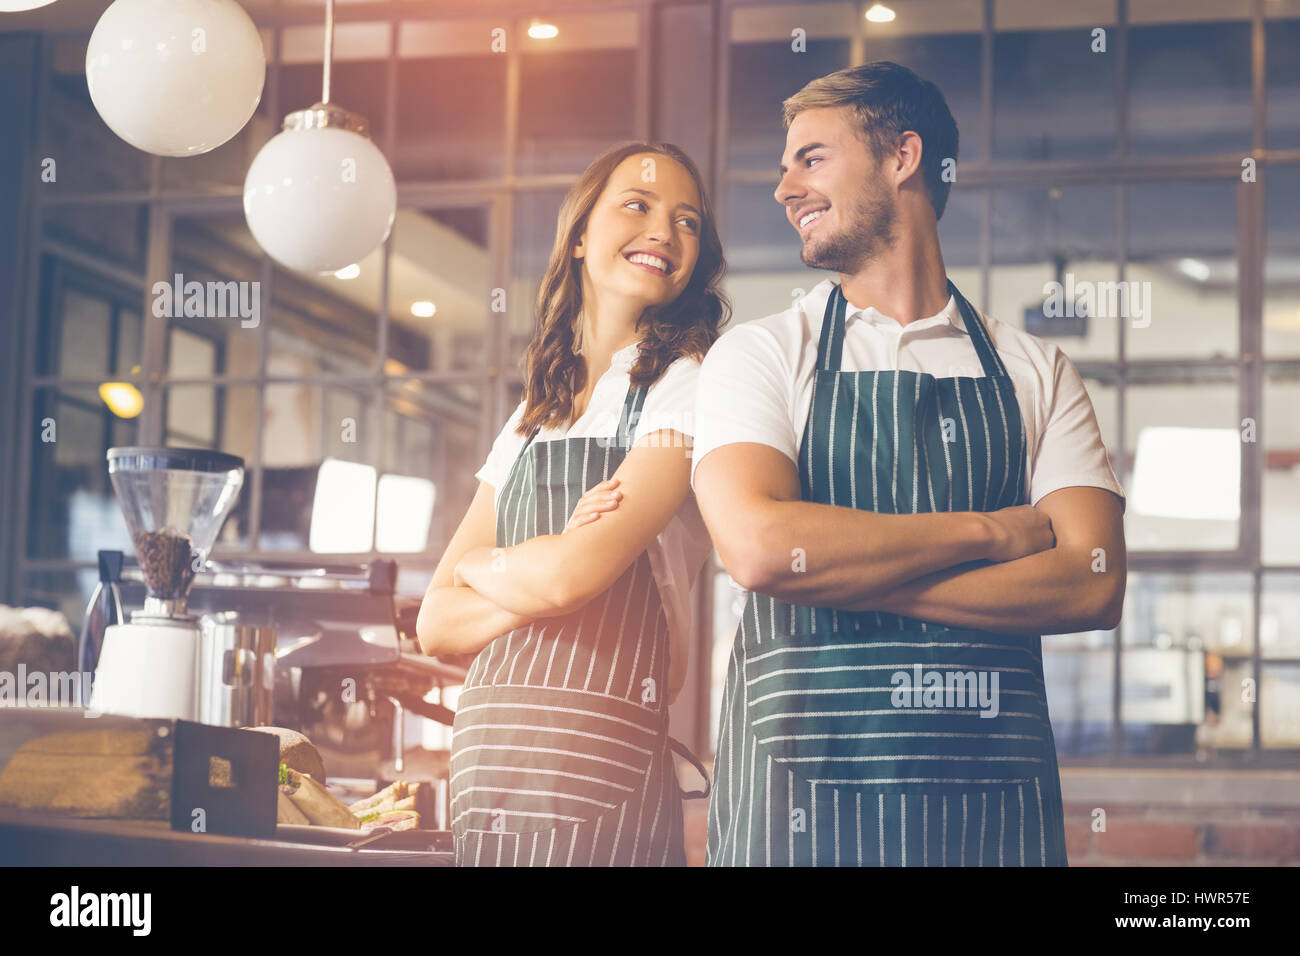 Graphic image of flare against smiling co-workers standing together - Stock Image